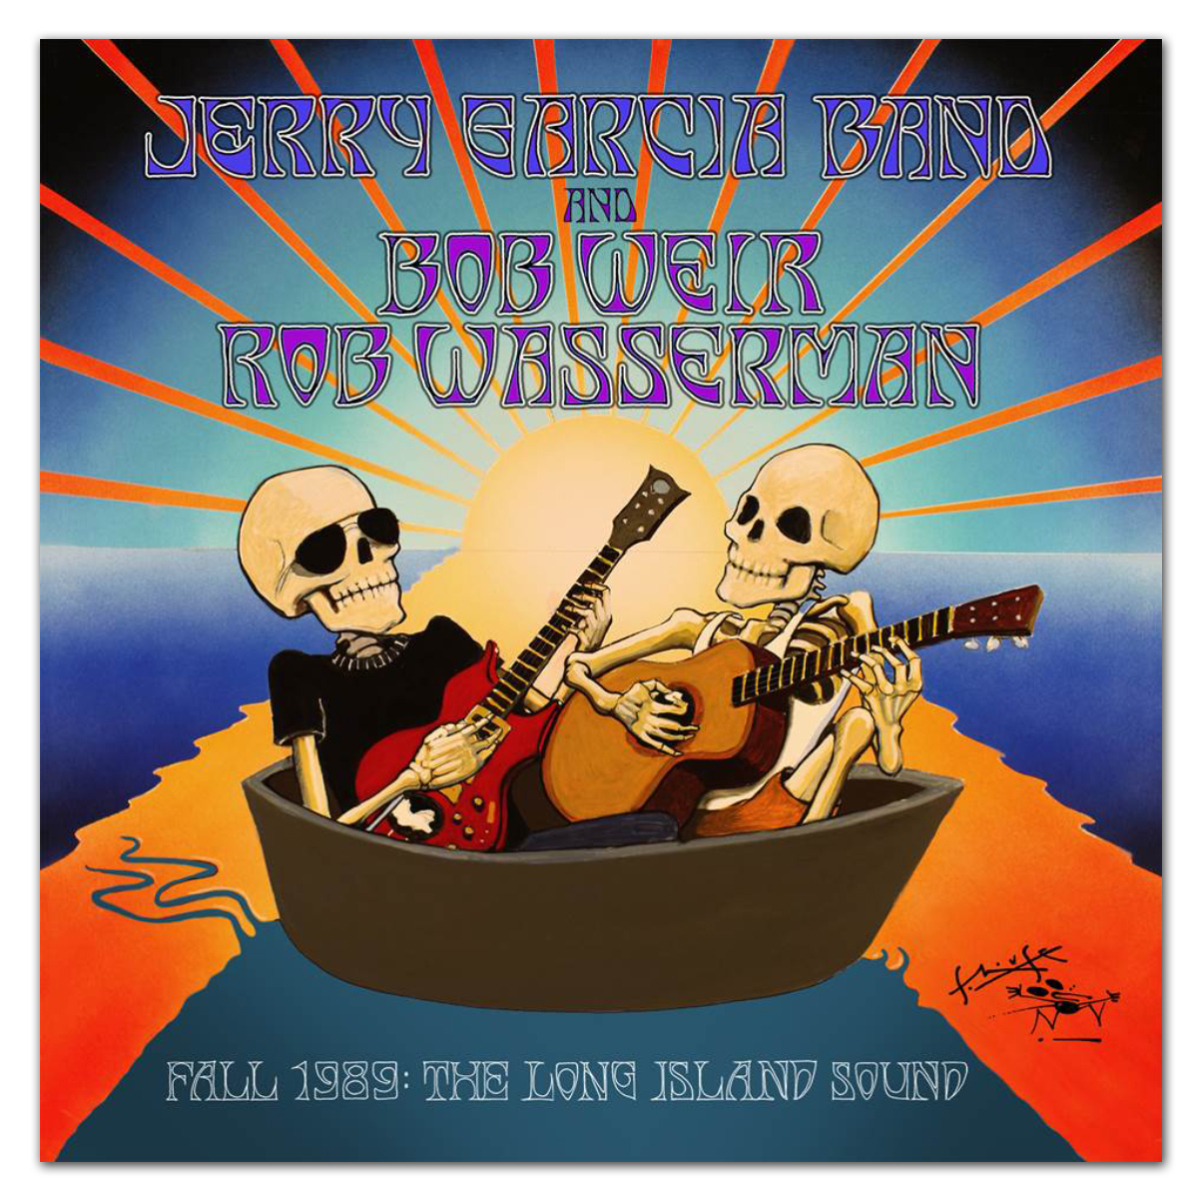 Fall 1989: The Long Island Sound Digital Download